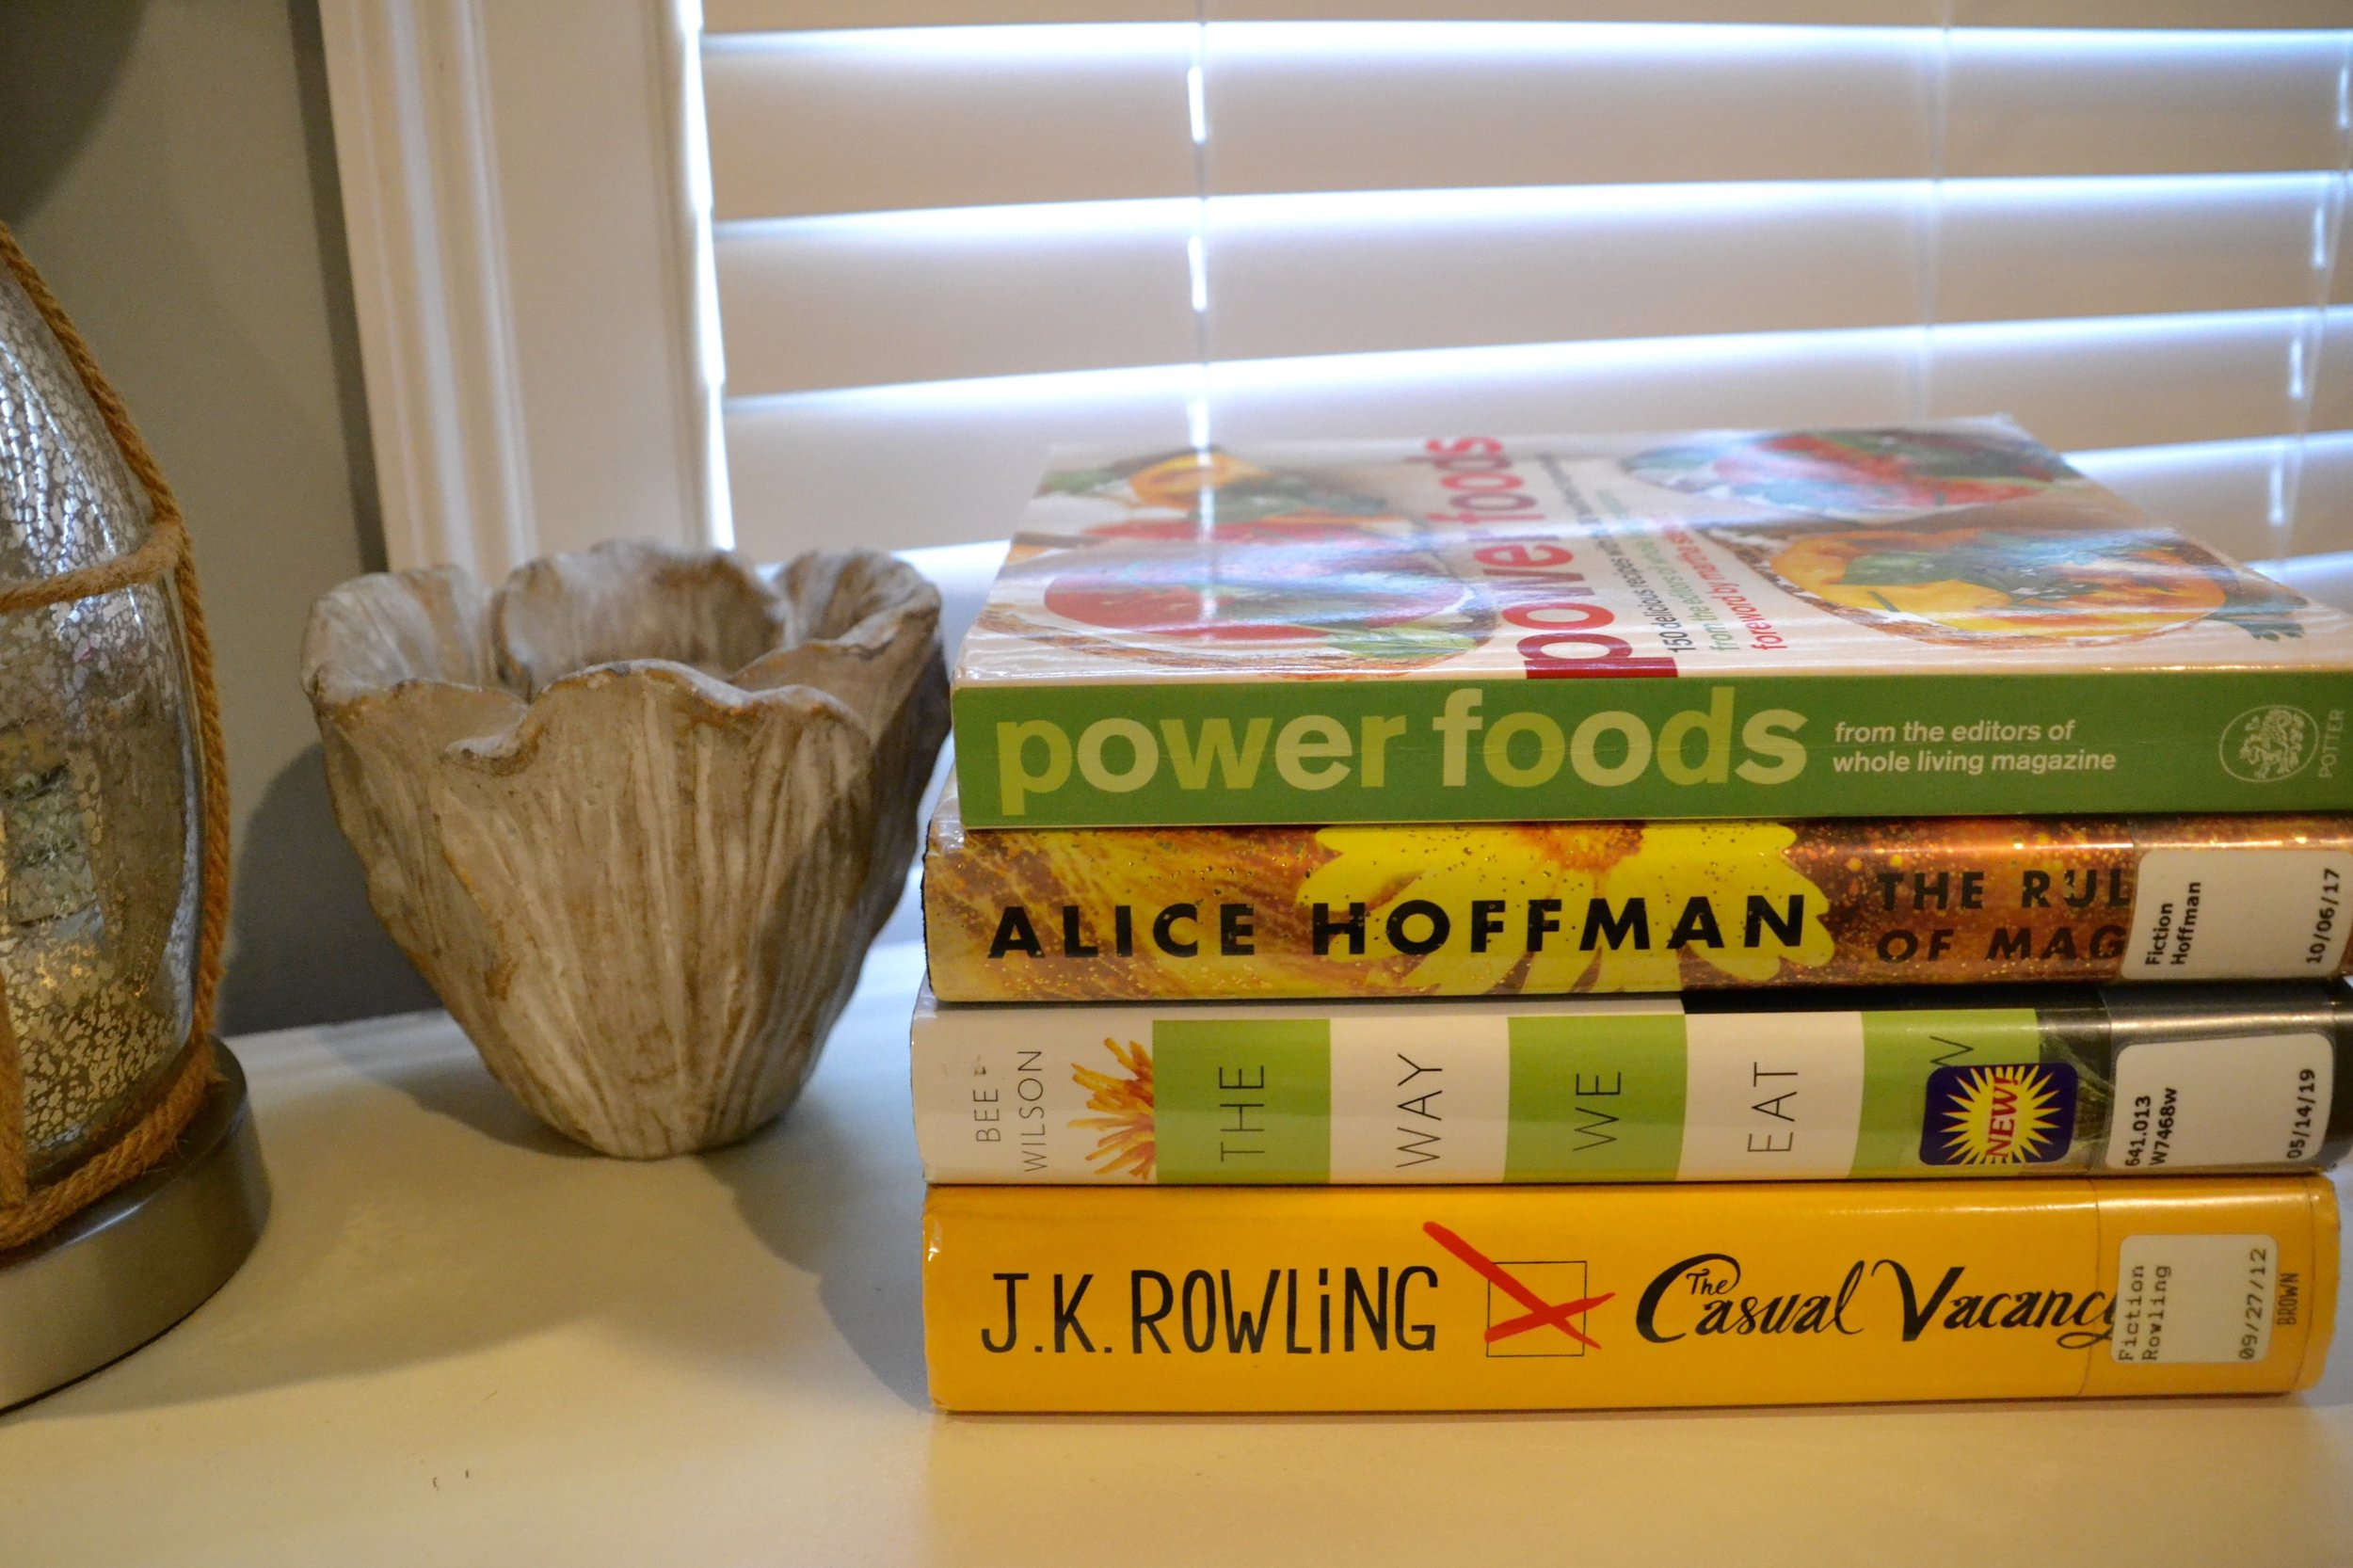 July 2019 - Power Foods by Whole Living MagazineThe Rules of Magic by Alice HoffmanThe Way We Eat Now by Bee WilsonCasual Vacancy by J.K. Rowling